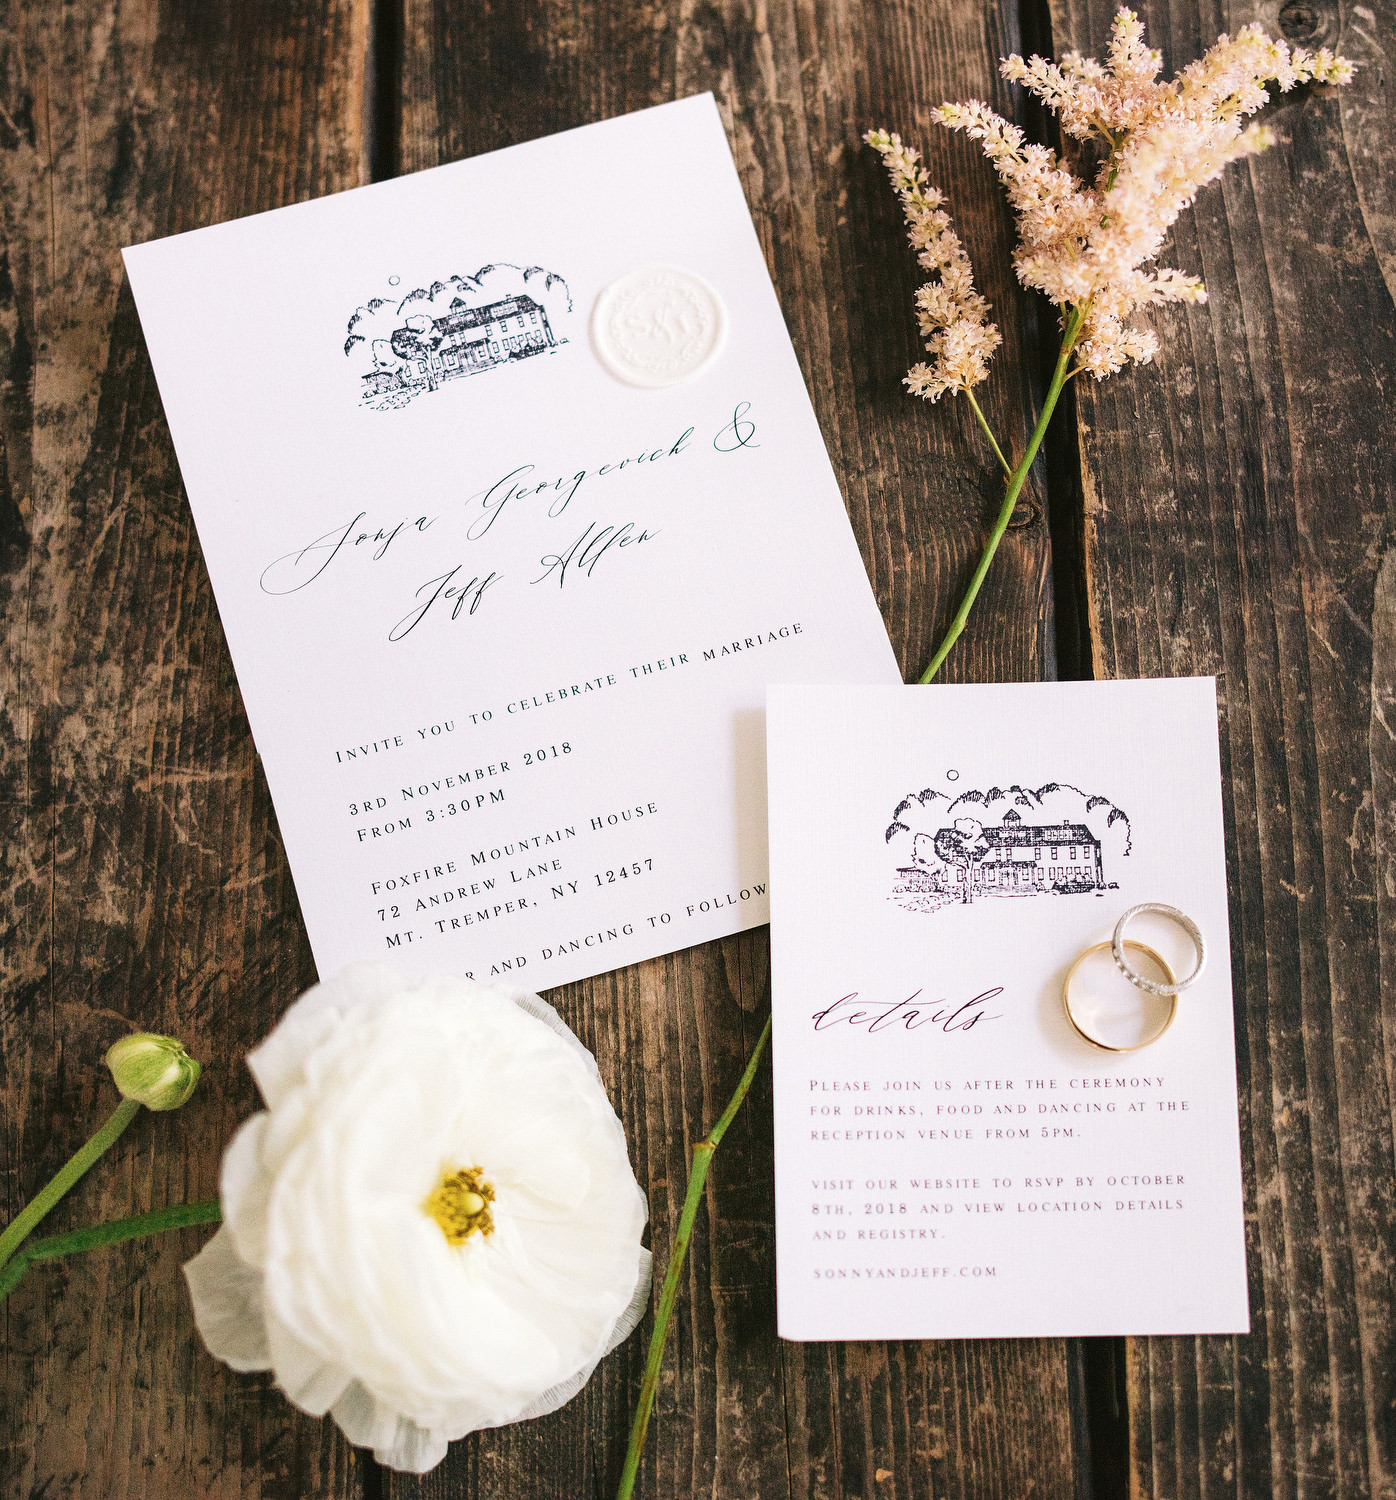 Elegant wedding invitations created by the bride, using Paper Presentation as a printer. Displayed with florals from the wedding day and the couple's rings. Editorial Wedding at Firefox Mountain House in Upstate New York.